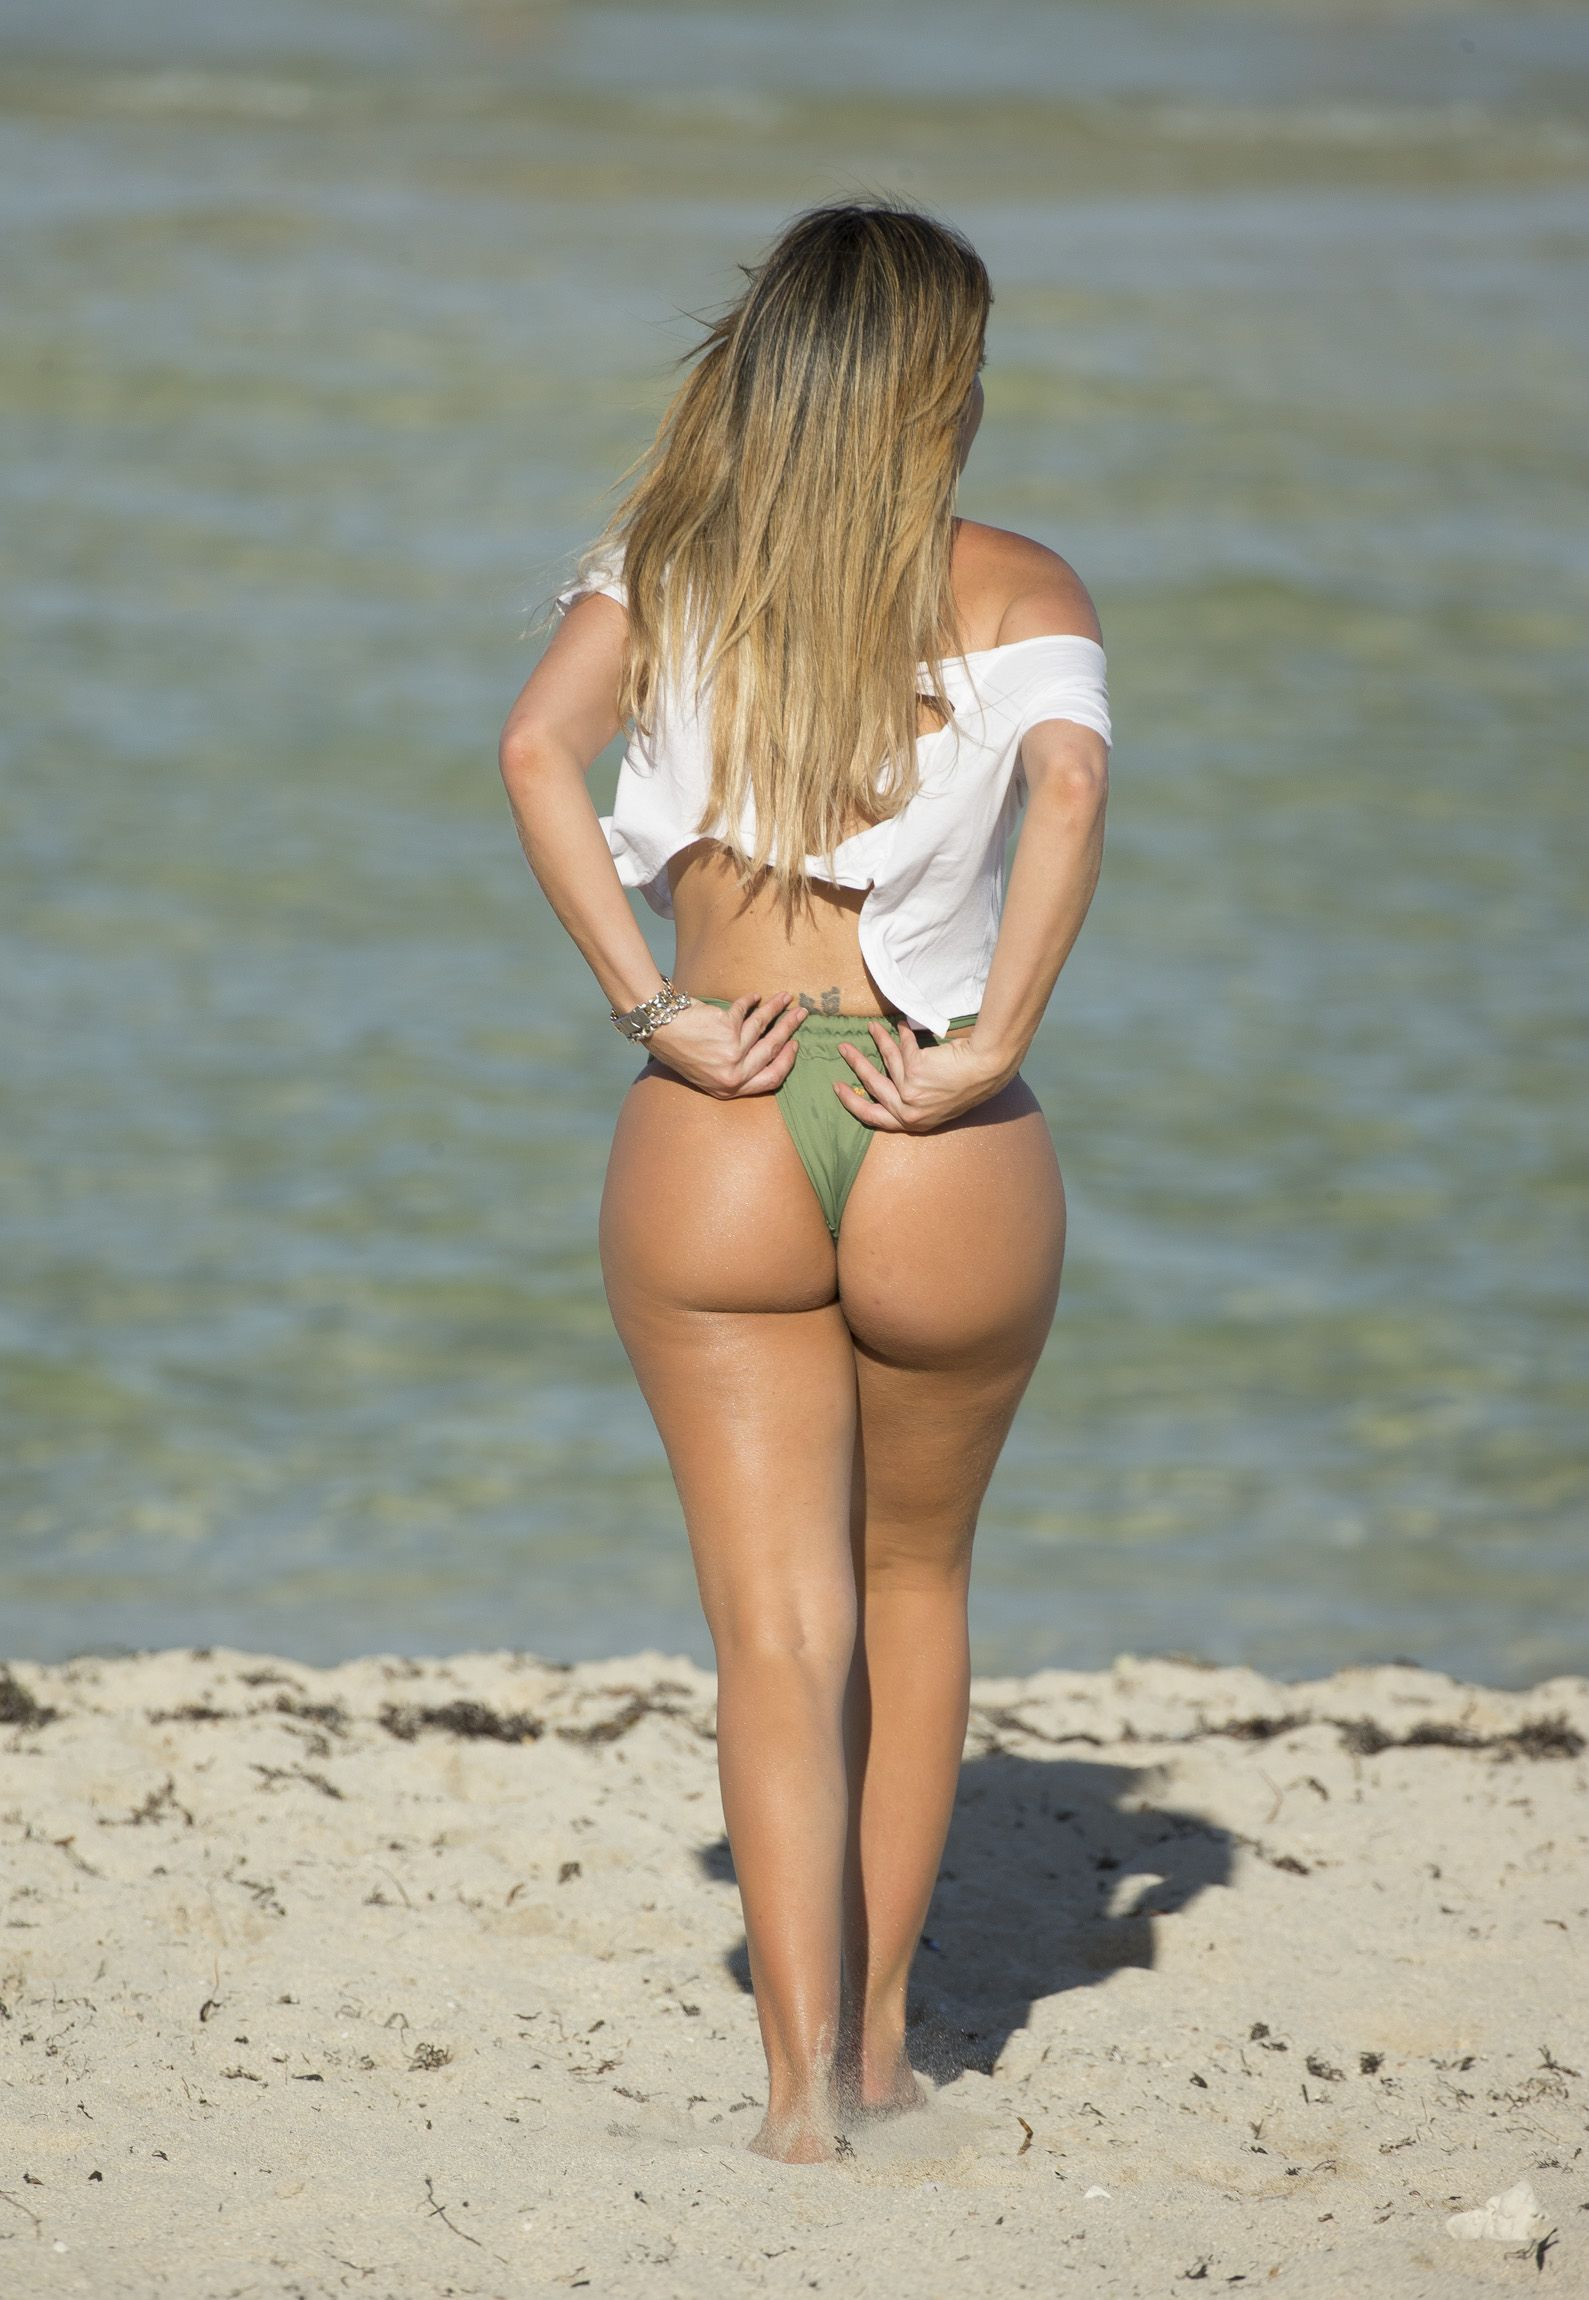 Booty Photos Of Liziane G...